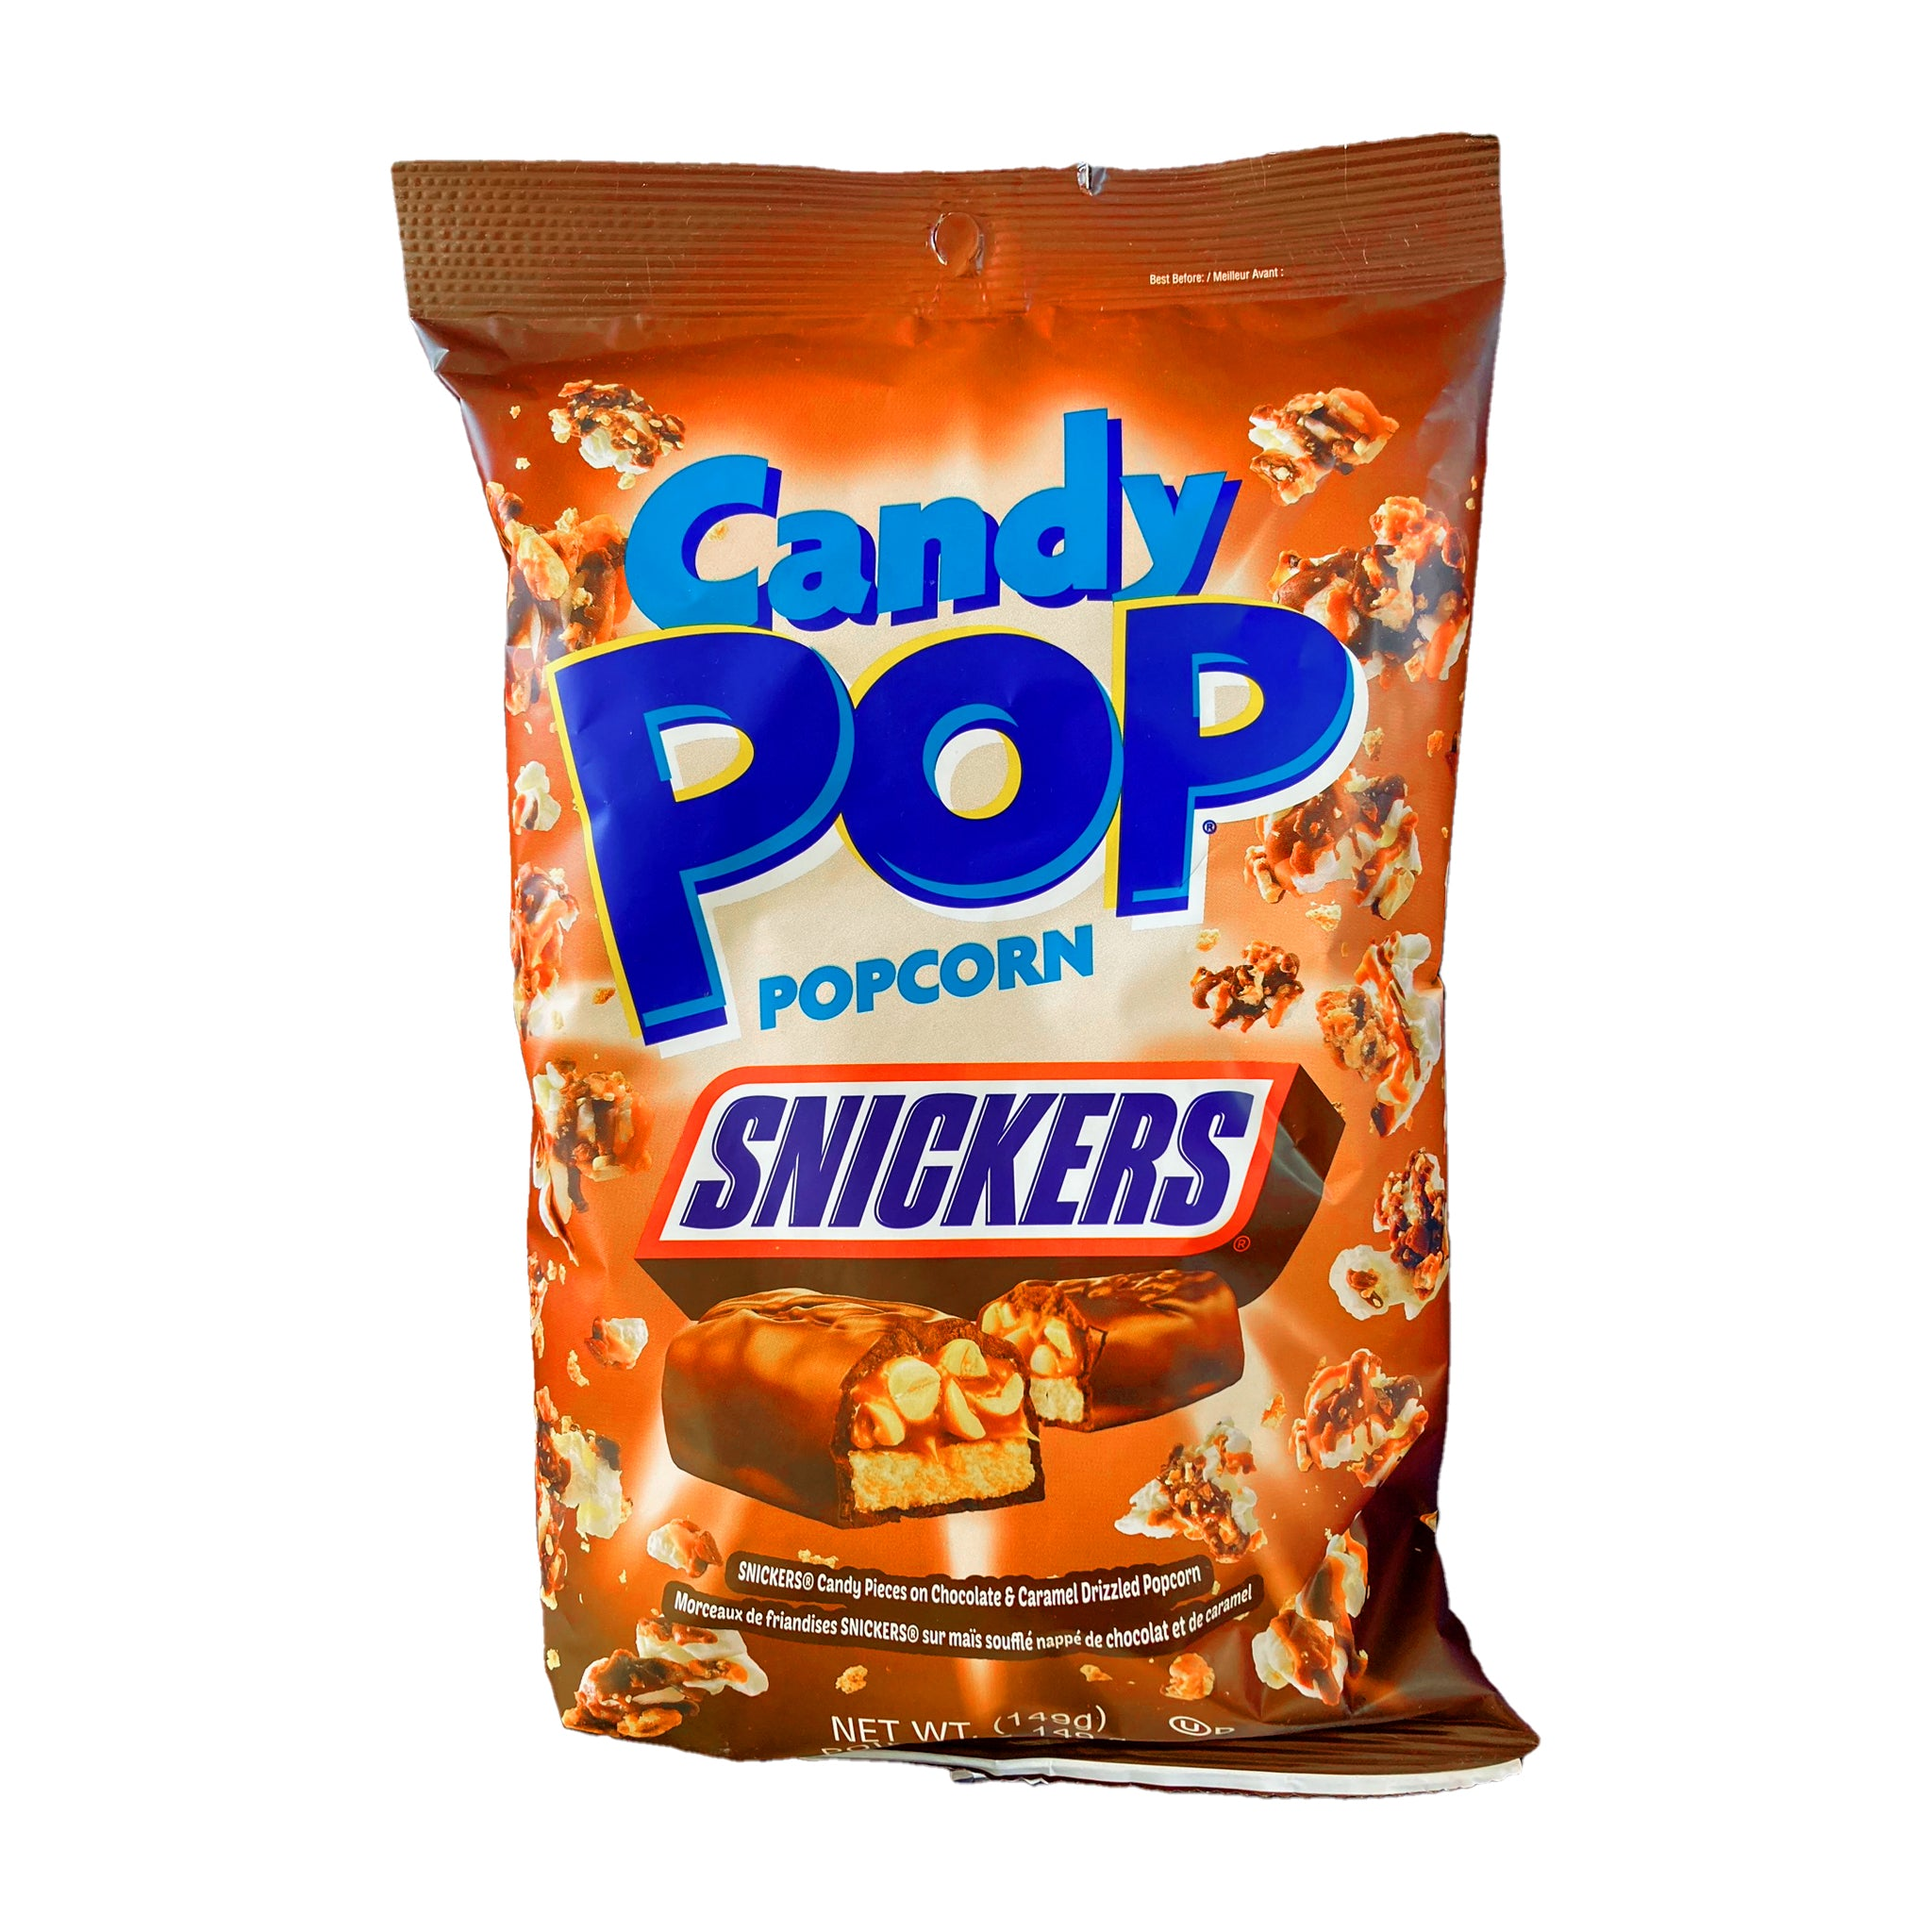 Candy Pop Snickers popcorn פופקורן סניקרס  טעימים